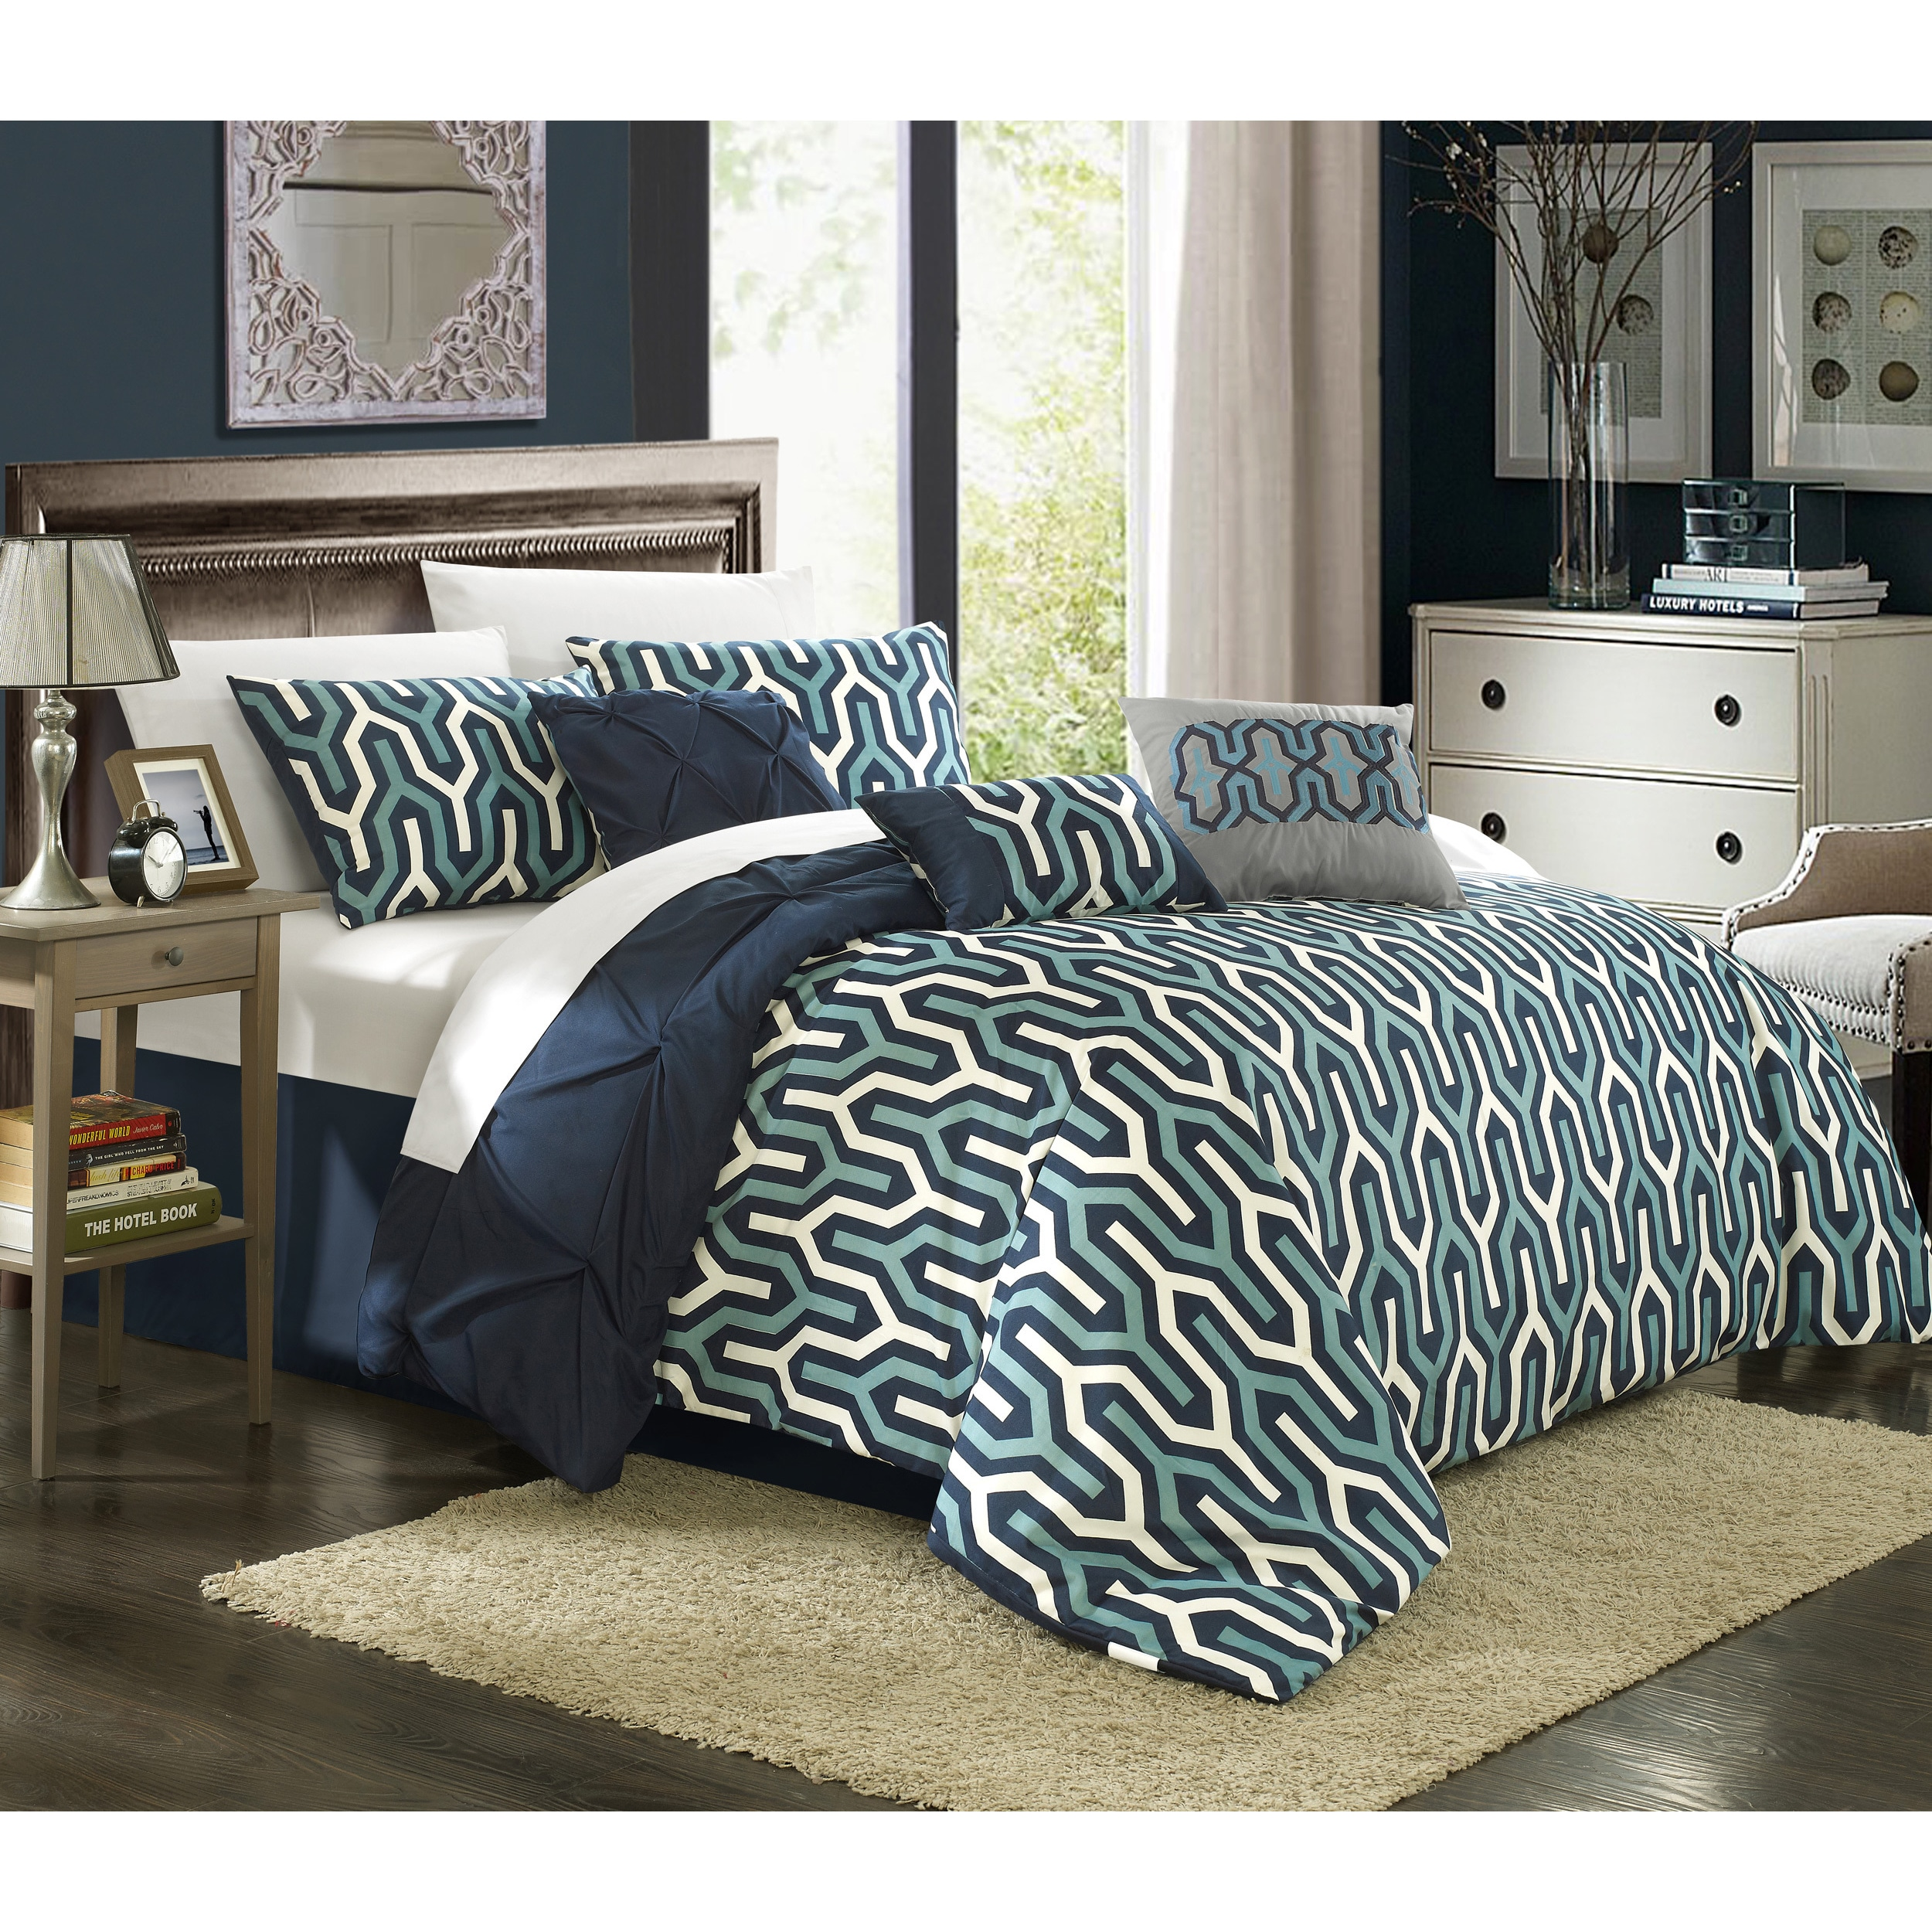 pintuck pleat piece comforter blue bed set king ga queen nwt navy to pinch pc new fabulous sunshiny garage